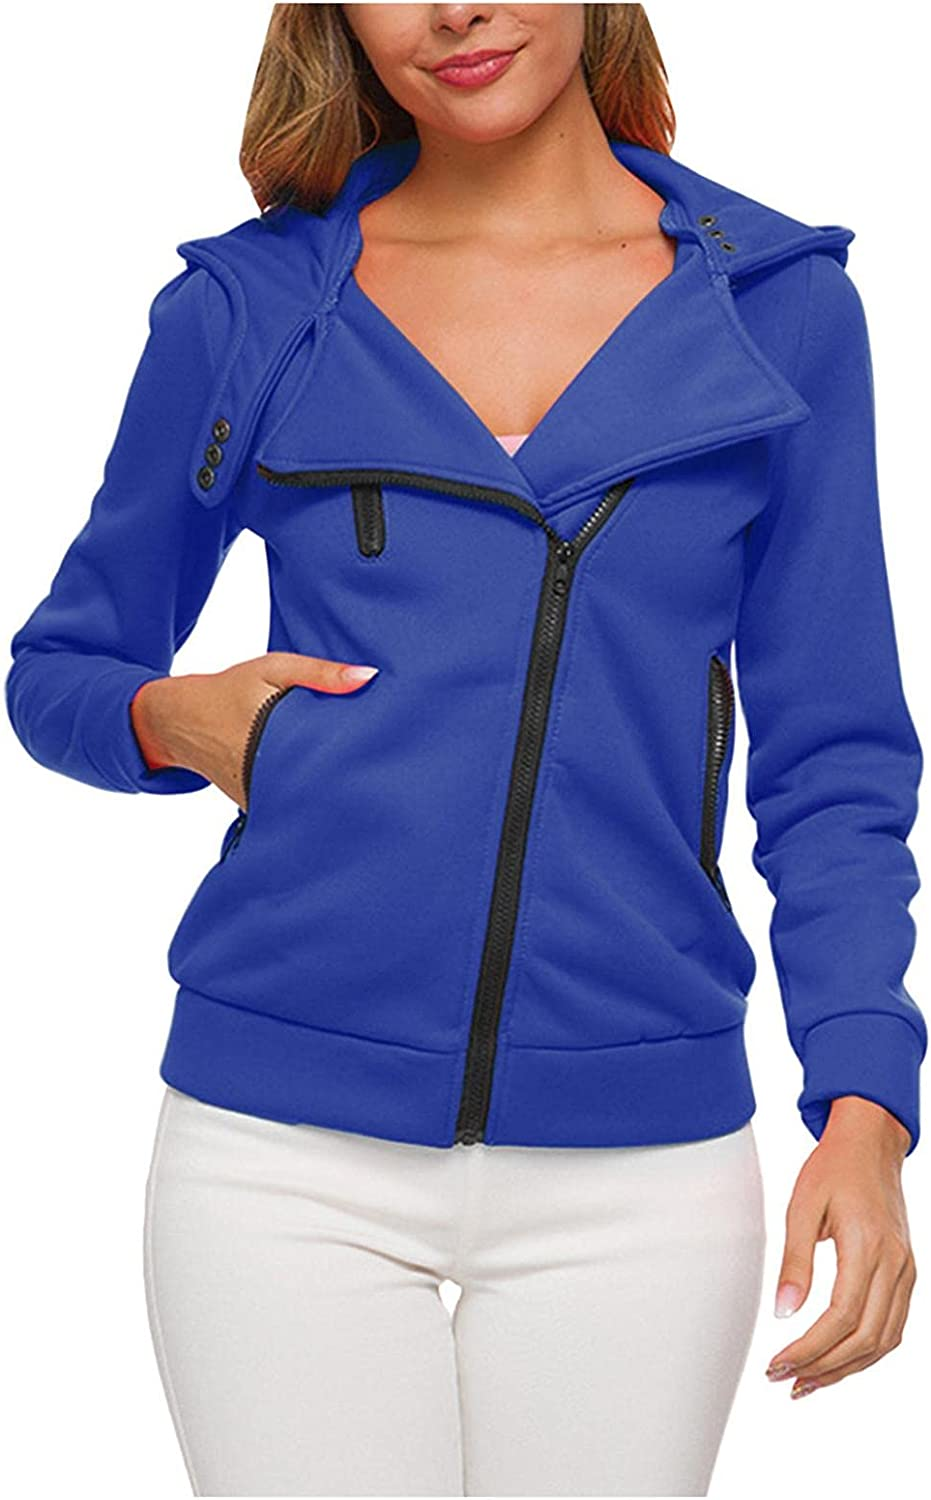 List price Recommended Anzzhon Adult Pullover Plush Sports Women Casual for Sweatshirts